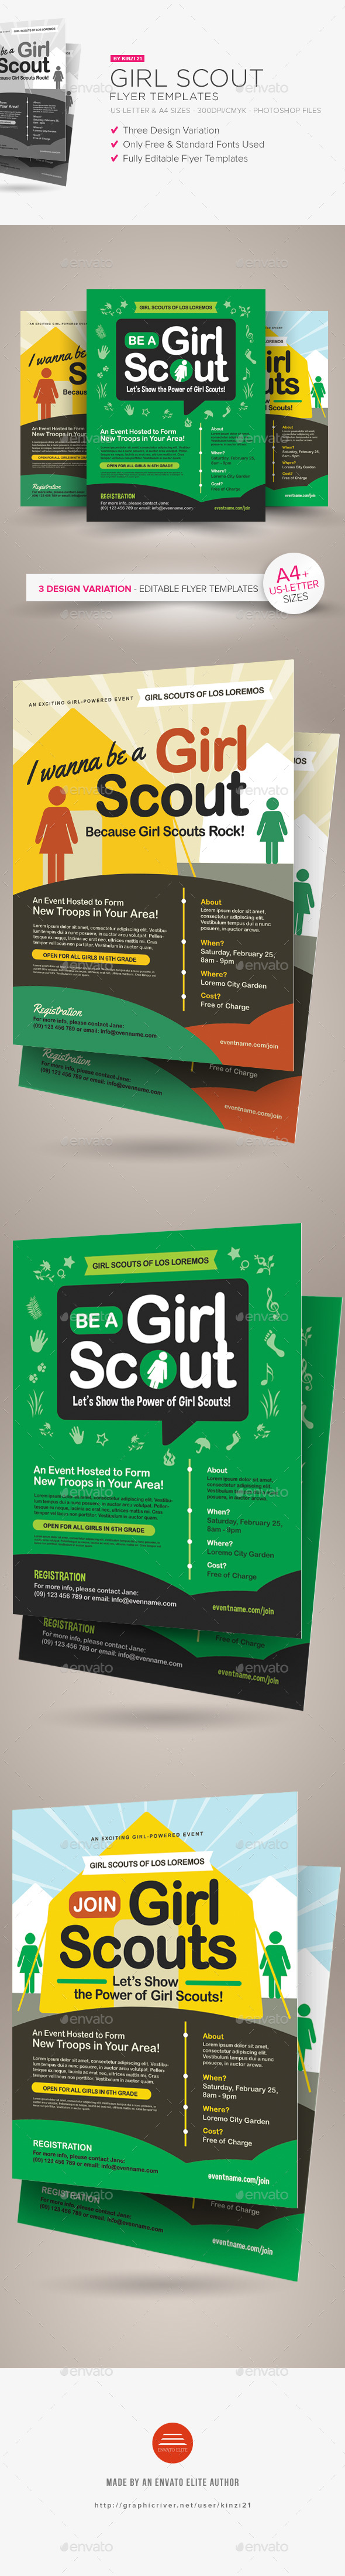 Girl scout flyer templates by kinzi21 graphicriver girl scout flyer templates miscellaneous events pronofoot35fo Image collections